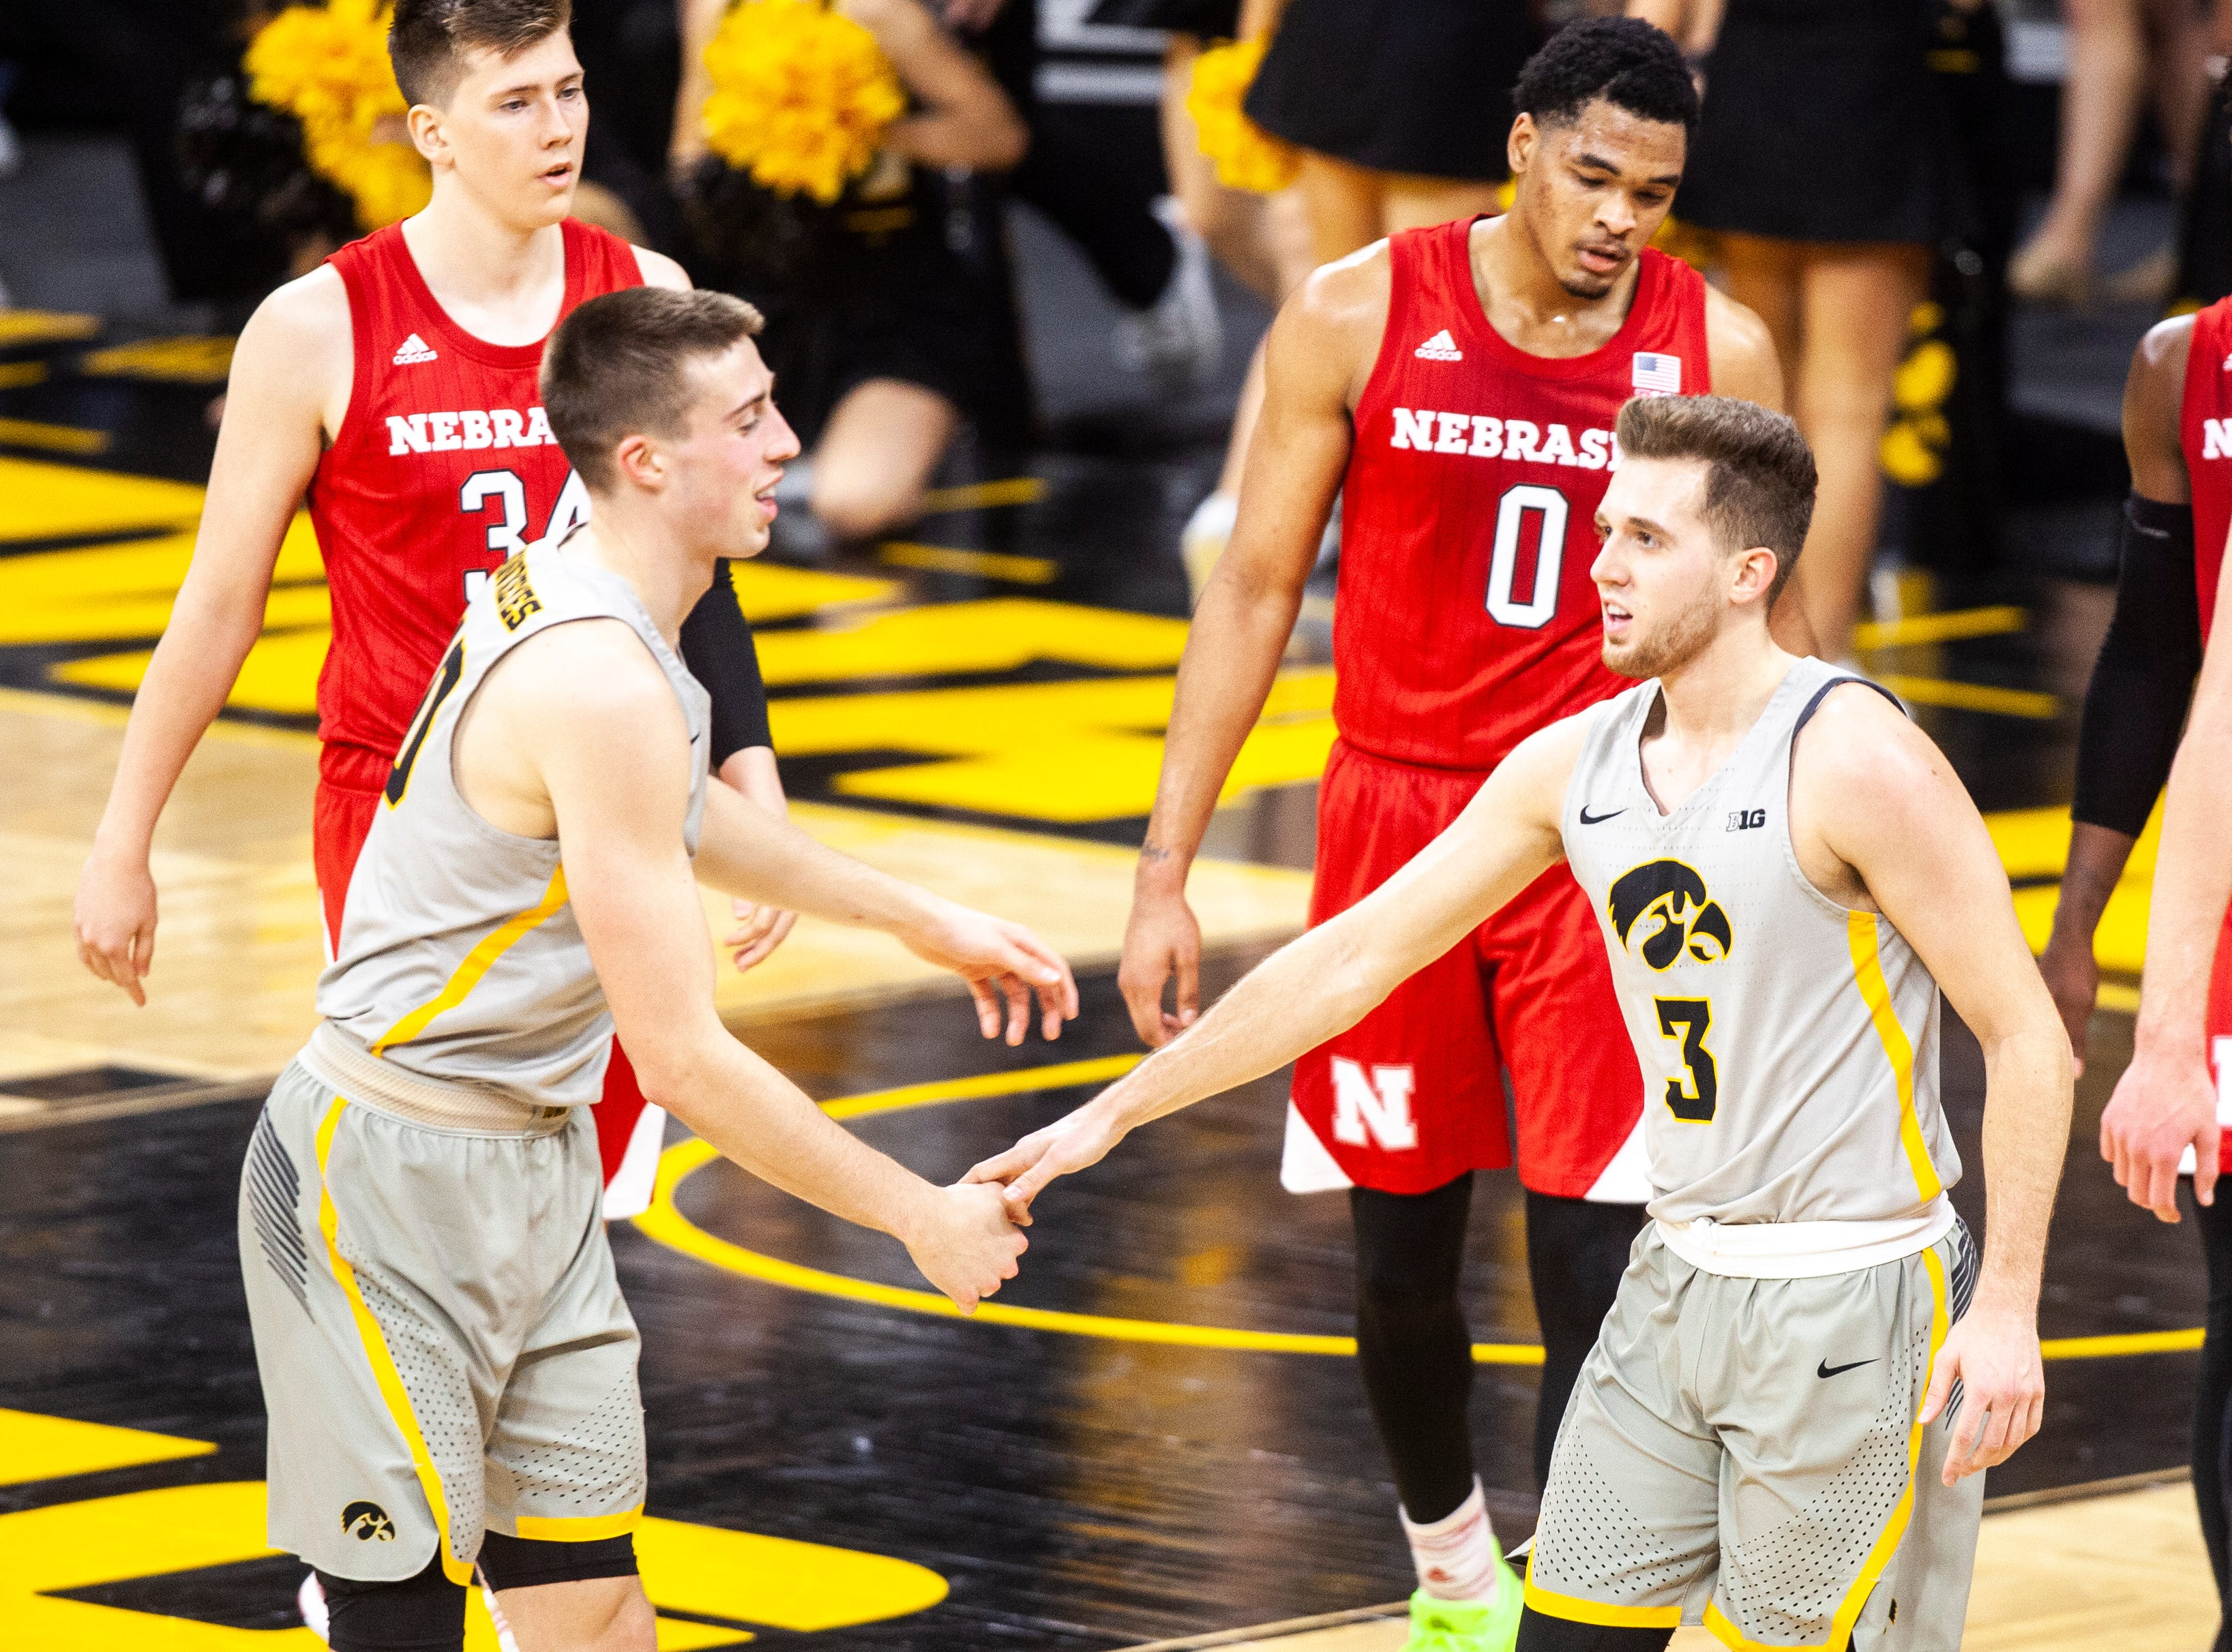 Iowa guard Jordan Bohannon (3) gets a high-five from Iowa guard Joe Wieskamp (10) after making a 3-point basket at the end of the first half during a NCAA Big Ten Conference men's basketball game on Sunday, Jan. 6, 2019, at the Carver-Hawkeye Arena in Iowa City, Iowa.